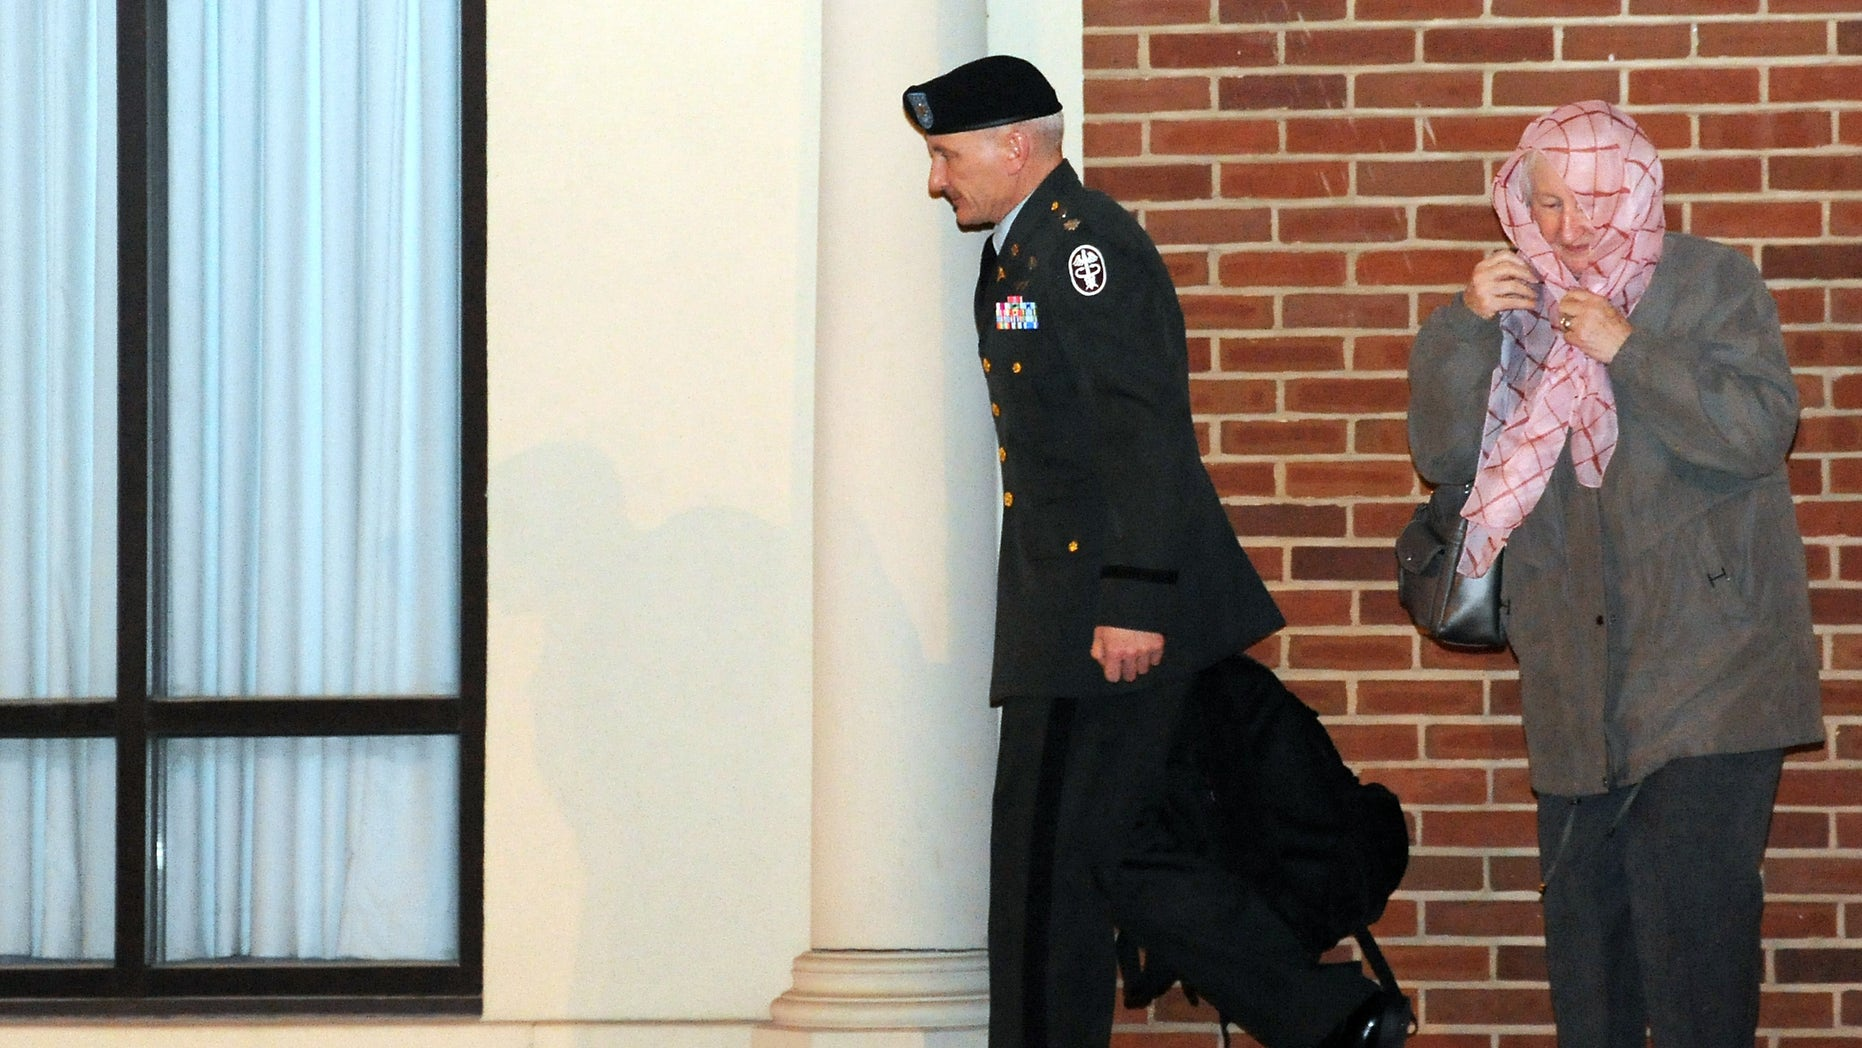 Dec. 15:Army Lt. Col. Terrence Lakin, left, of Greeley, Colo., leaves a military court after being found guilty of missing a flight for deployment at Fort Meade, Md.